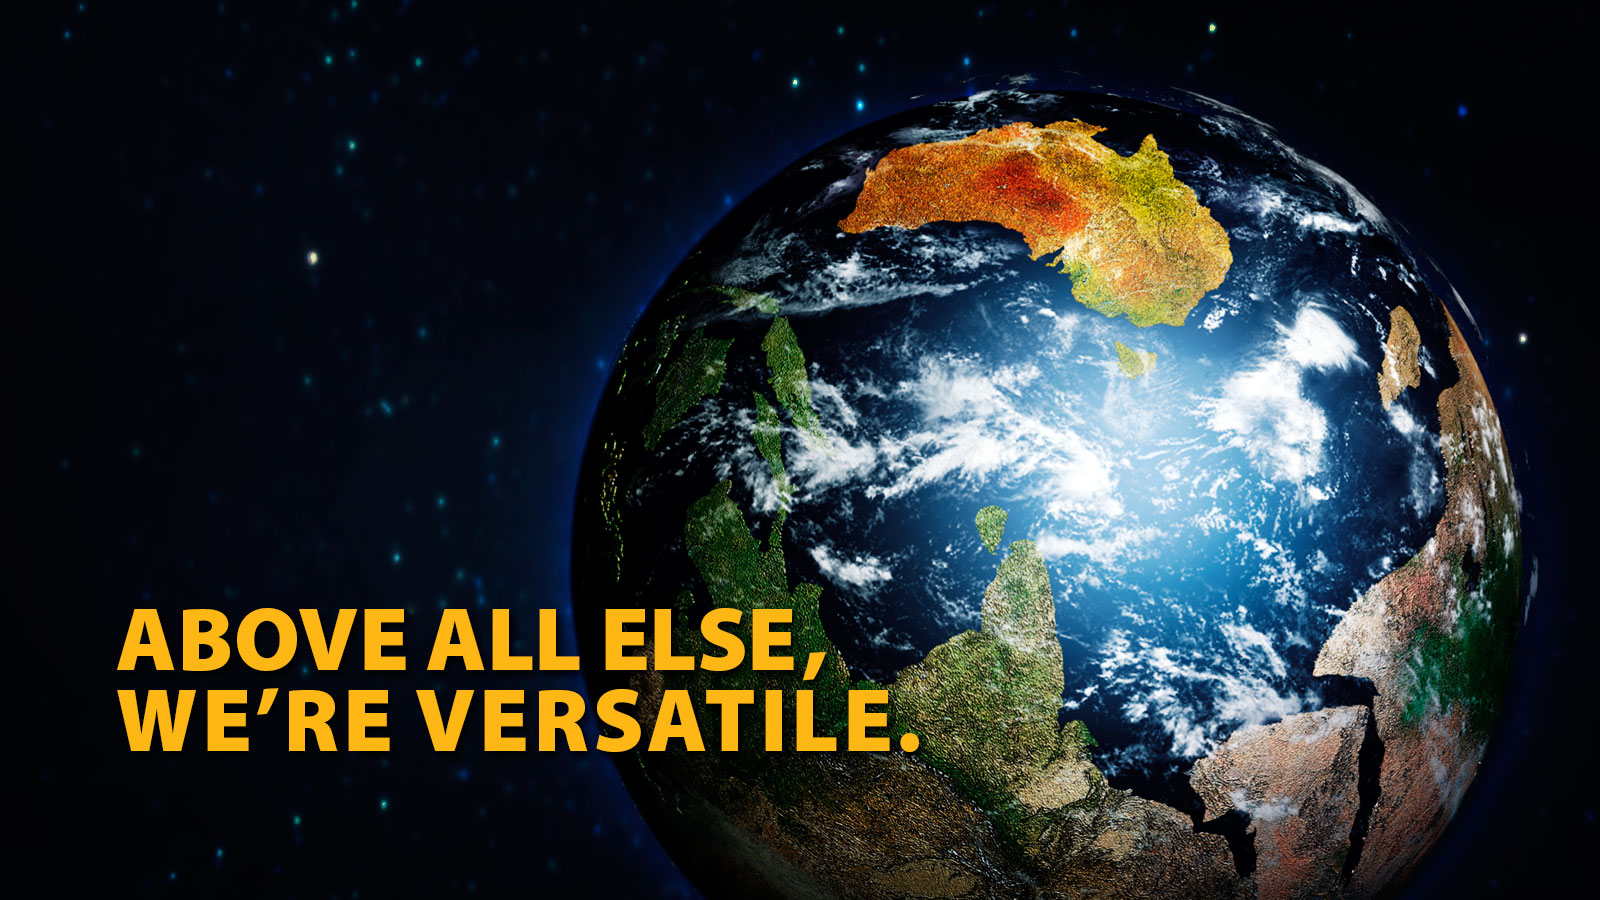 Above all else, we're Versatile.